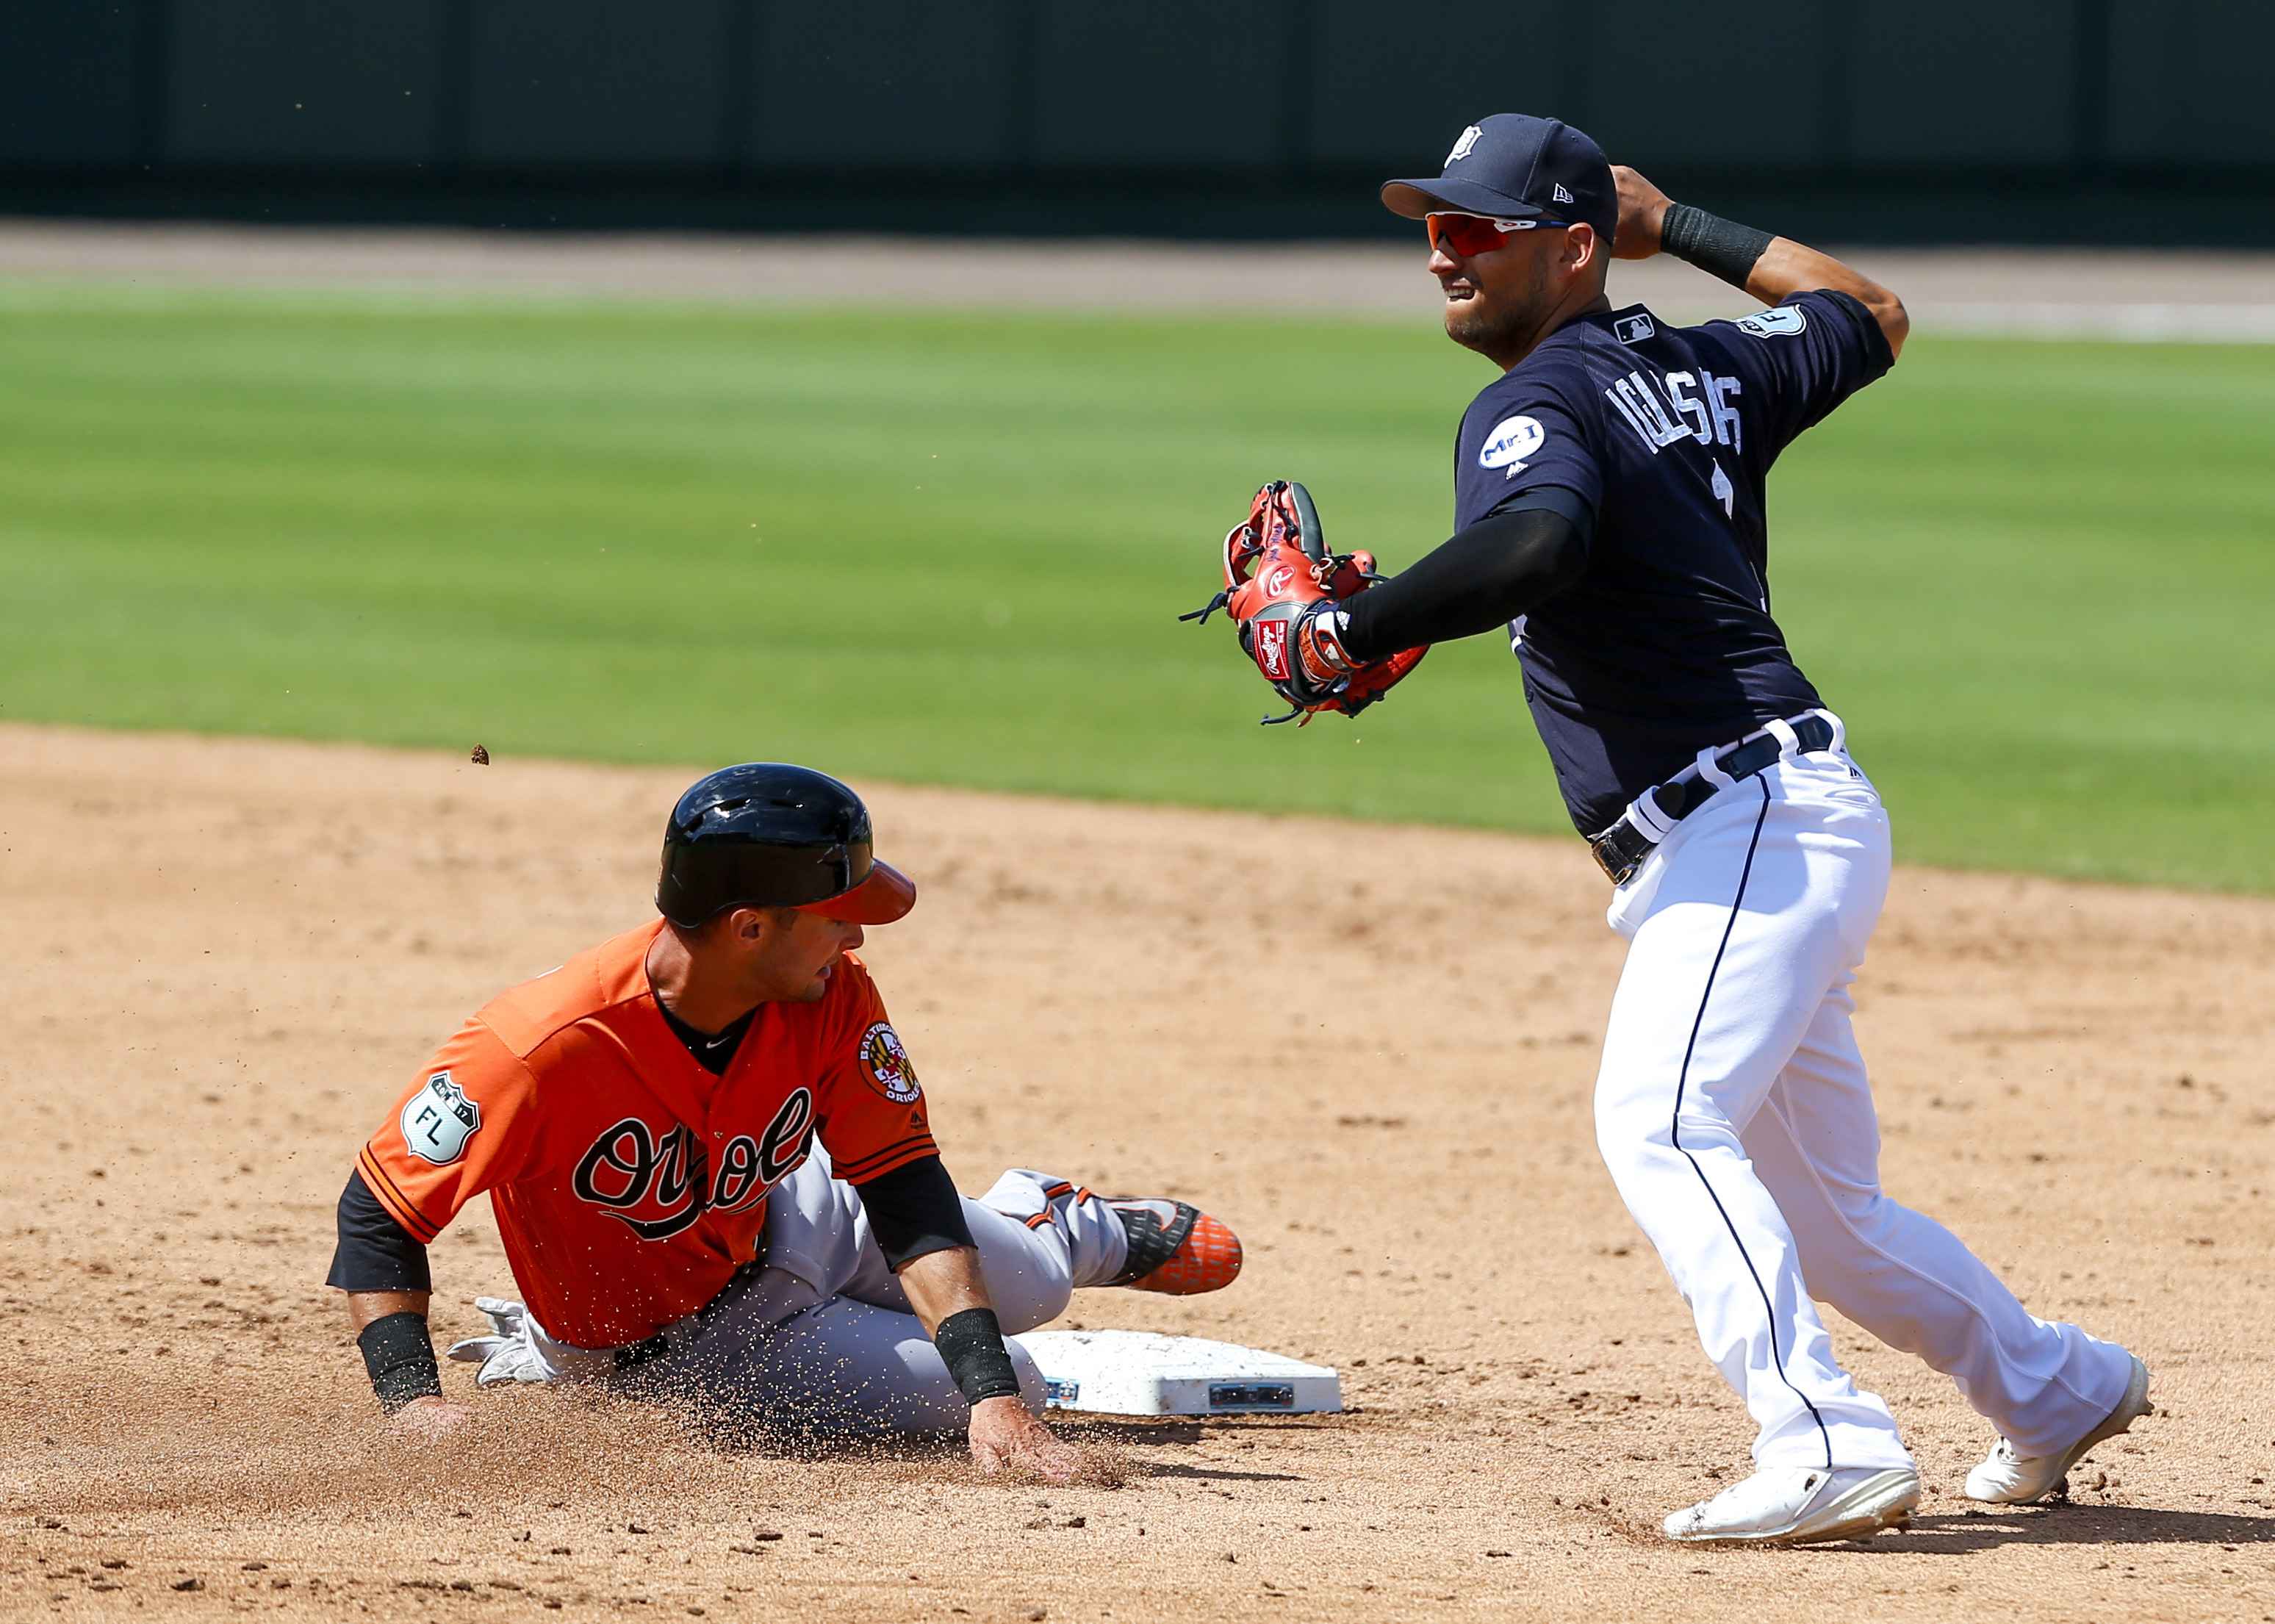 9922825-mlb-spring-training-baltimore-orioles-at-detroit-tigers